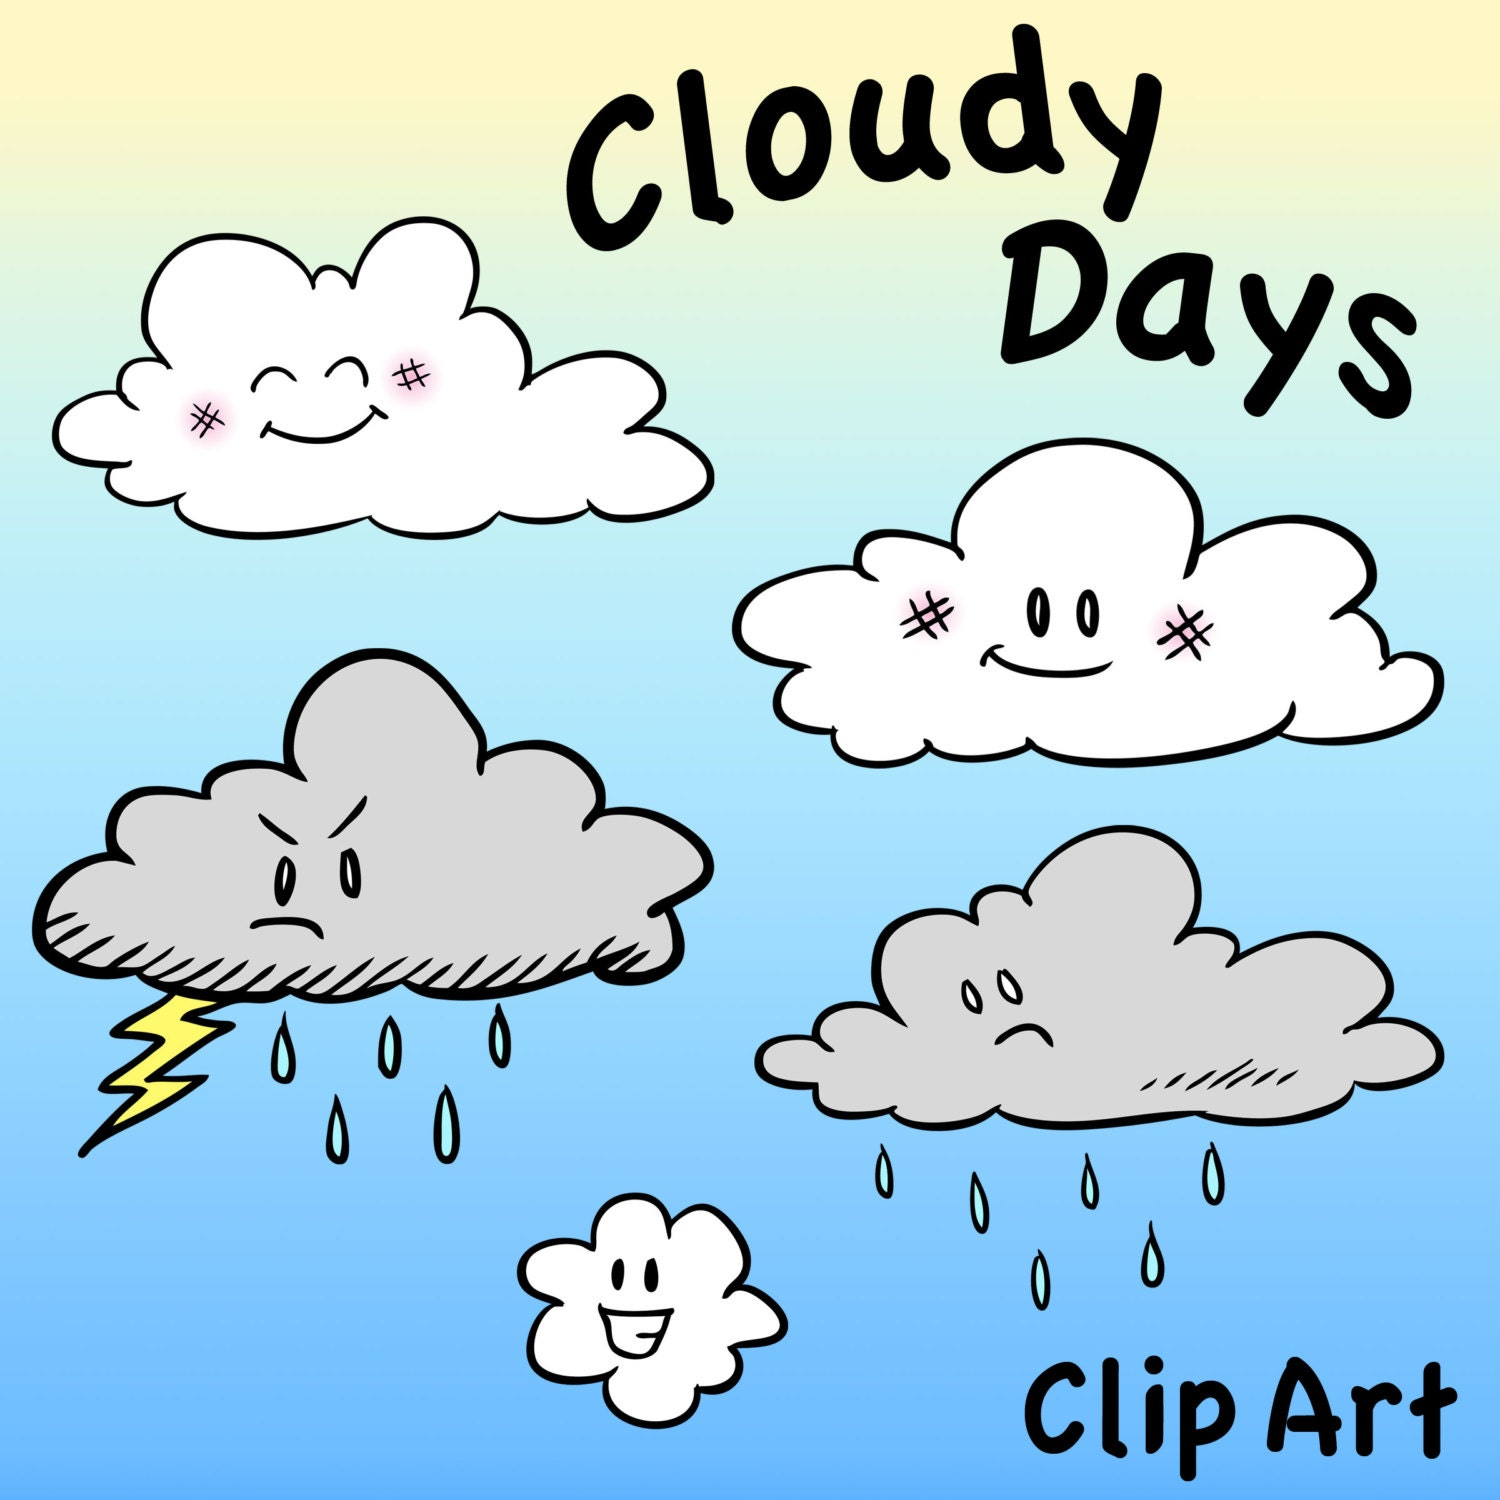 Cloud Characters Clip Art Cloudy Days Clipart Digital by ...